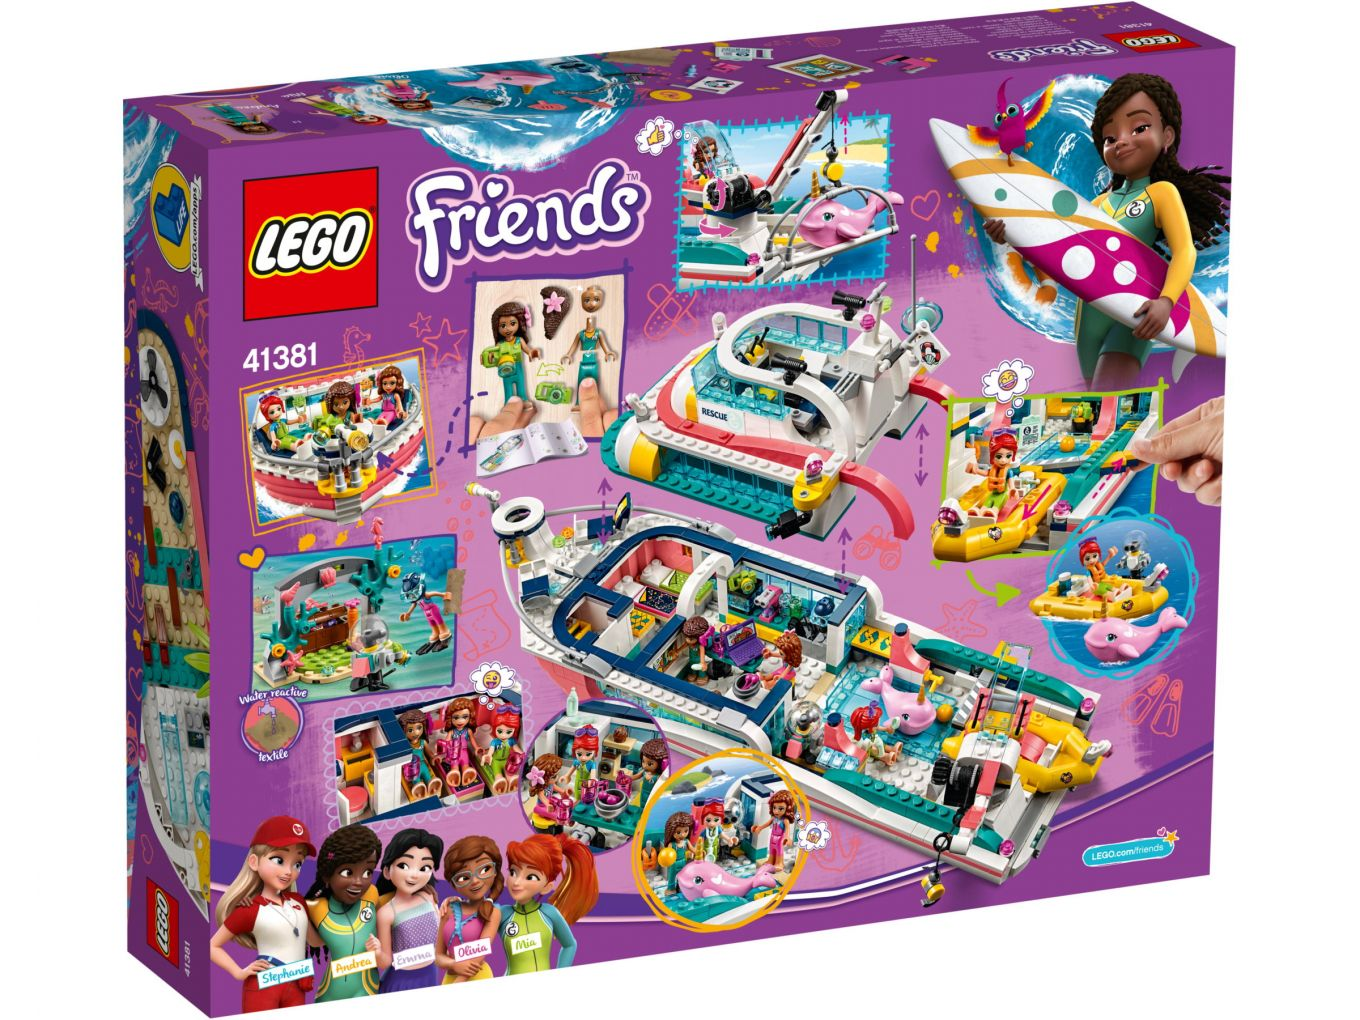 lego-friends-lifeboat-41381-box-back-2019 zusammengebaut.com